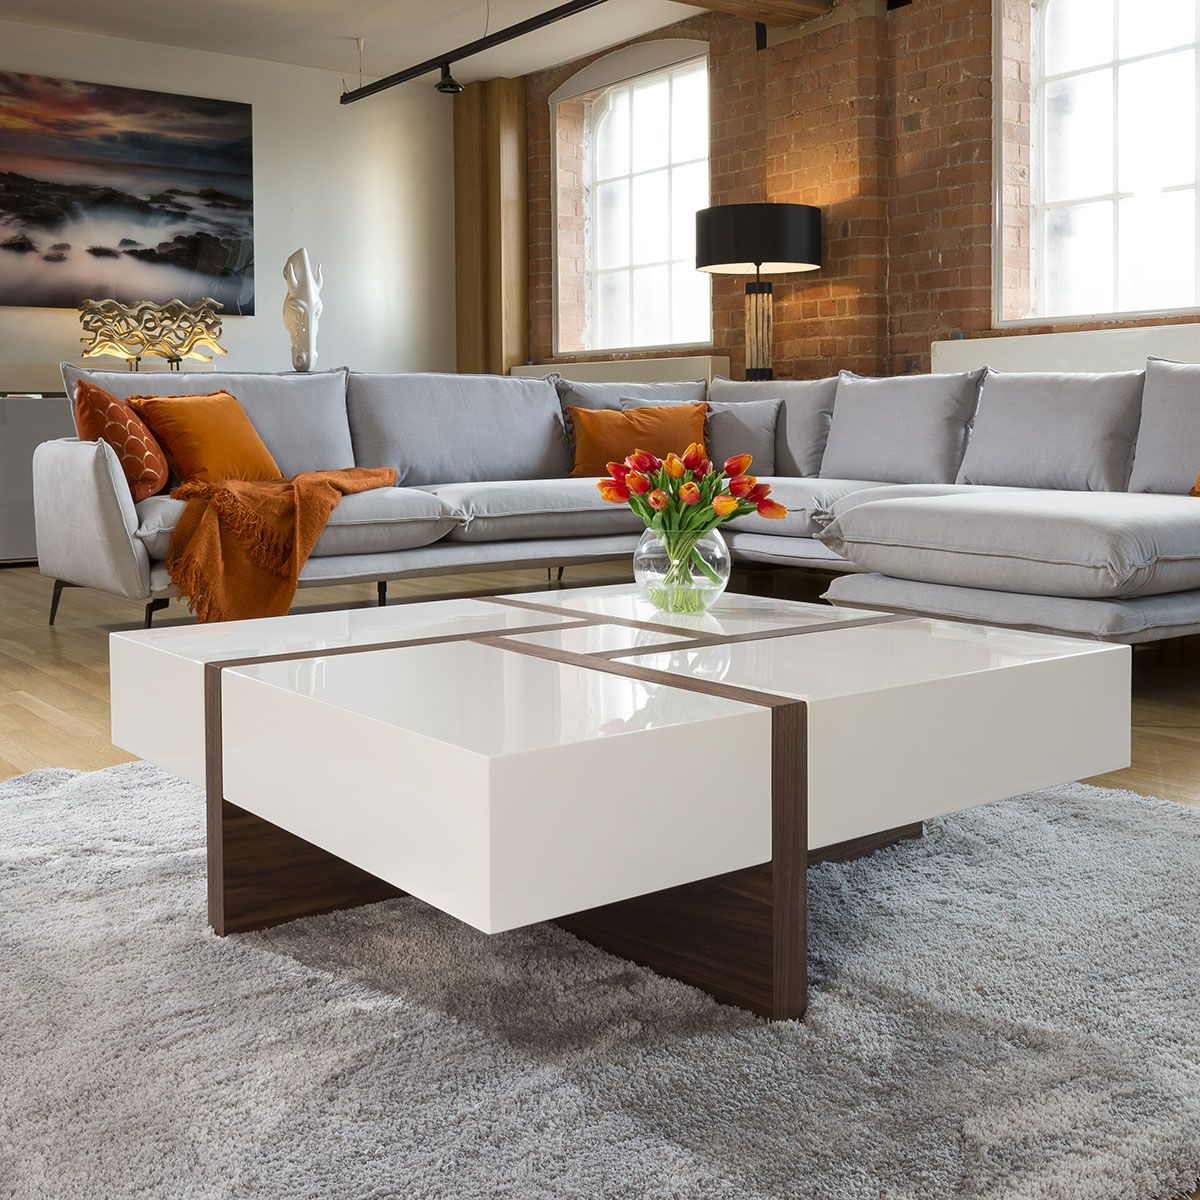 Huge modern square 1000mm coffee table white high gloss